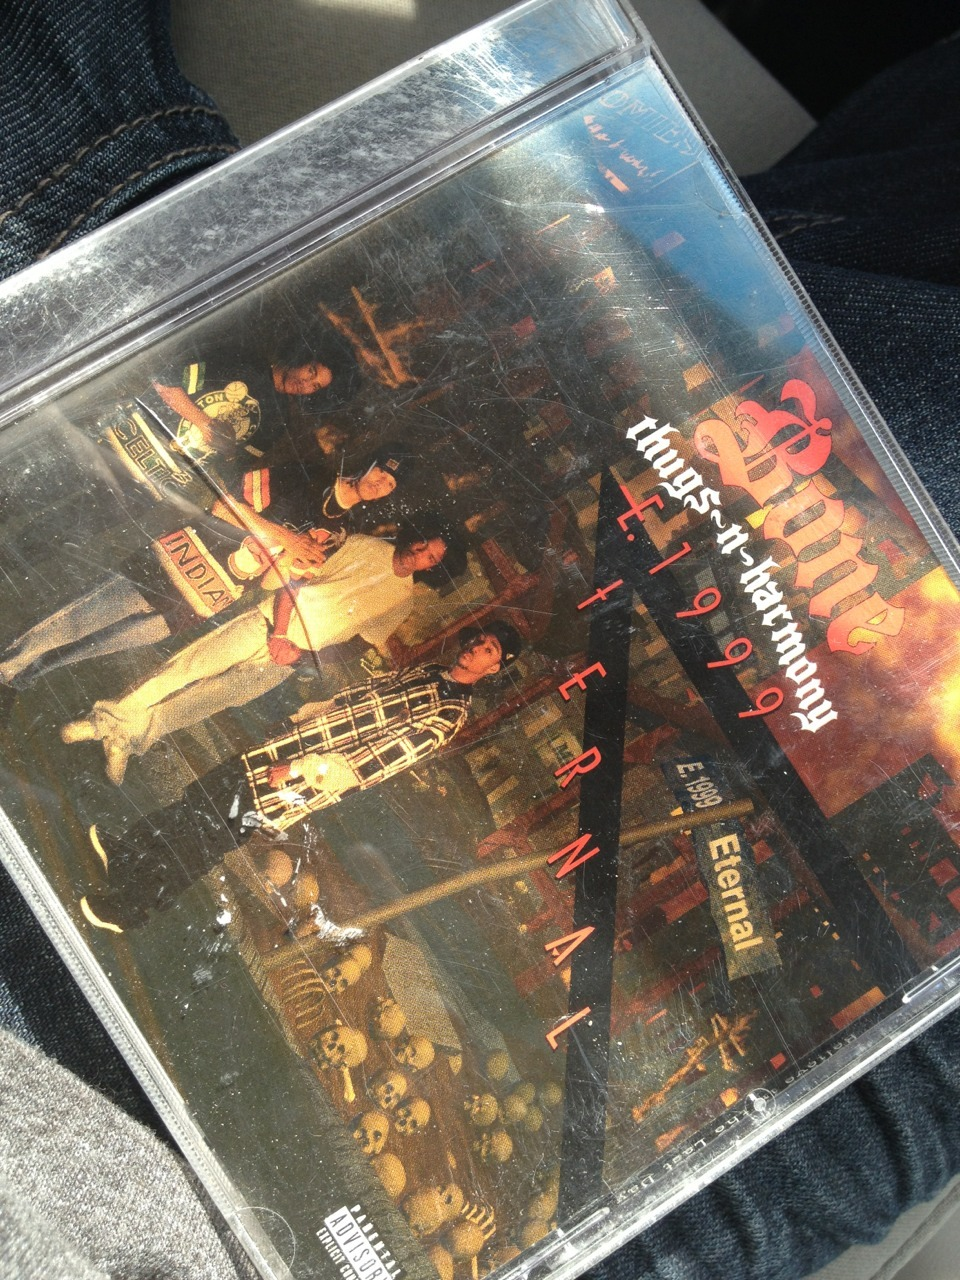 eman661:  One of them best albums Eternal 1999 Bone Thugs N Harmony